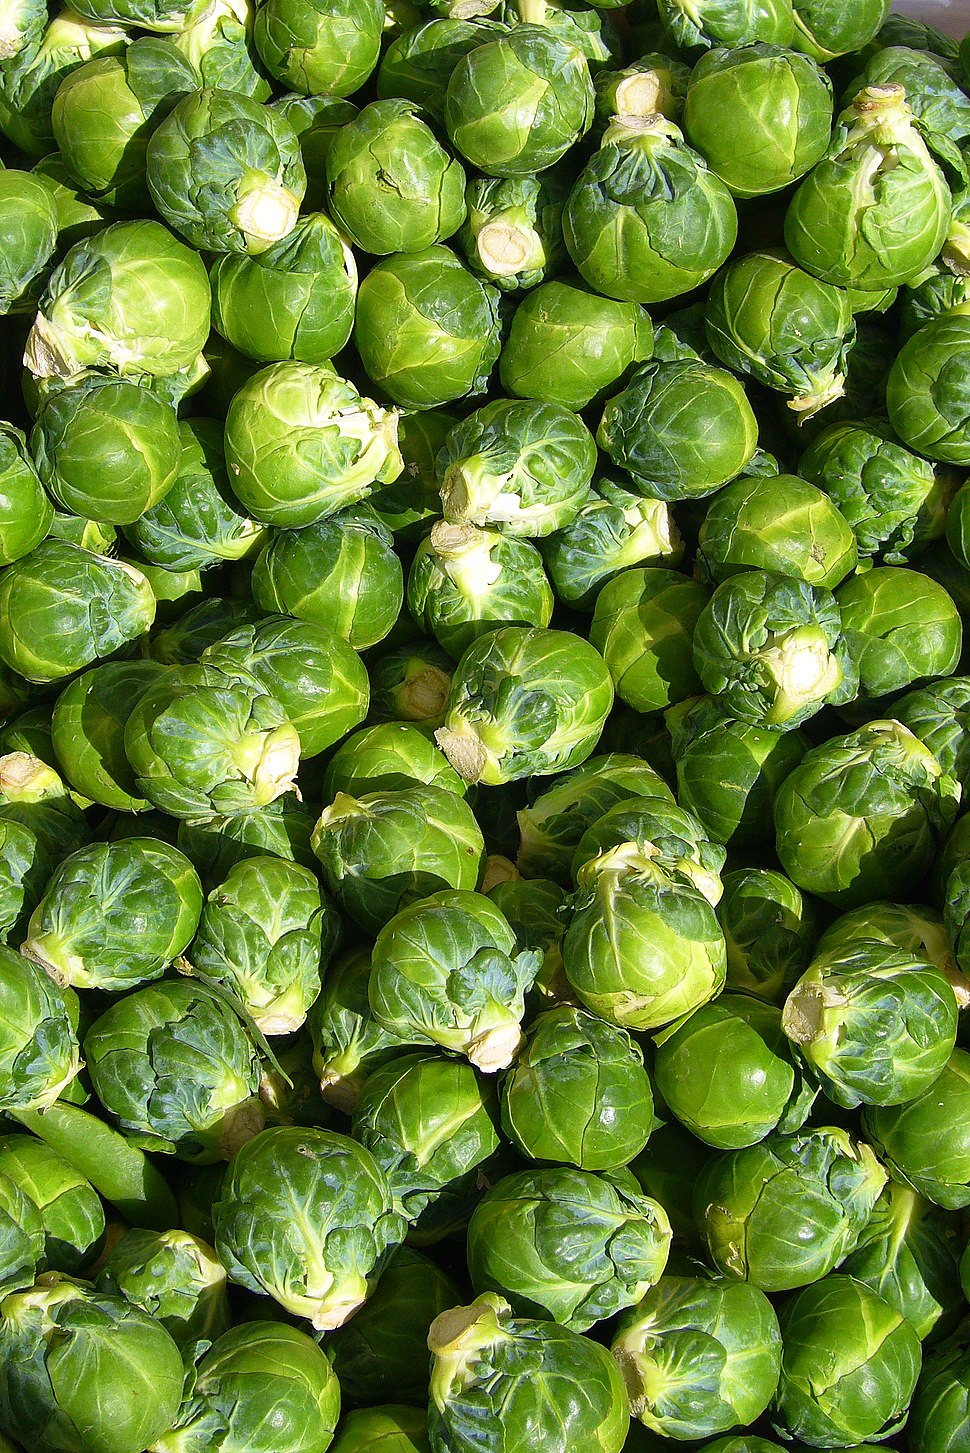 Brussels sprout closeup